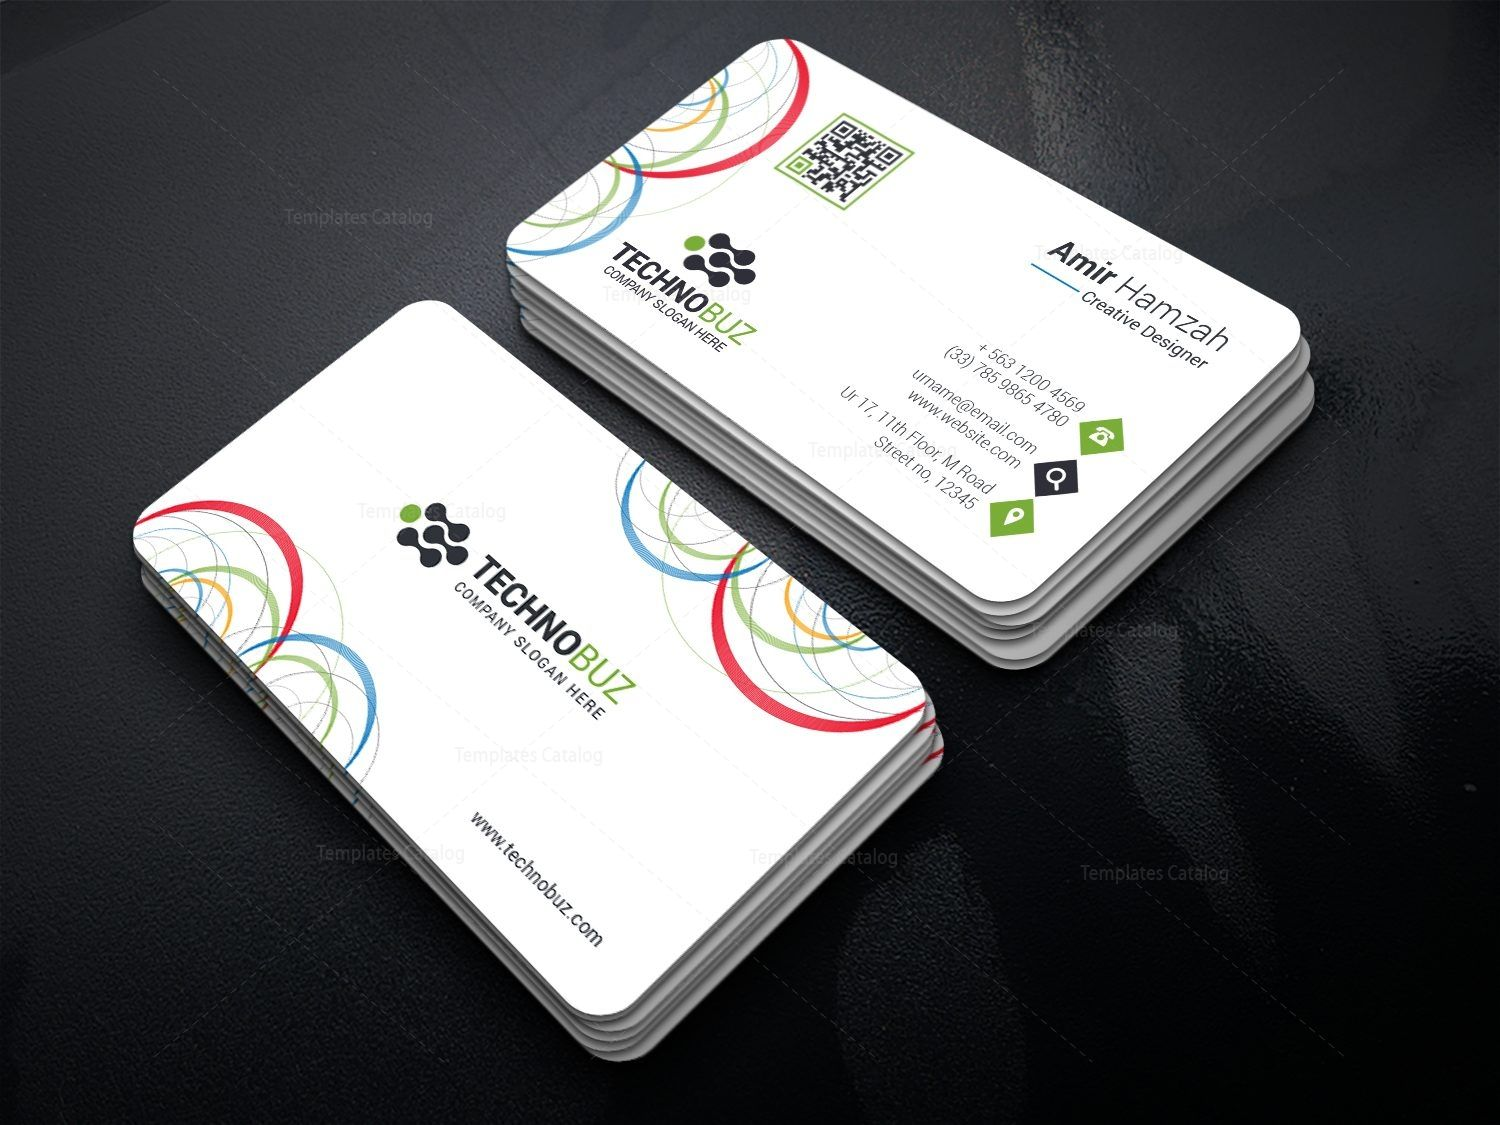 Circle premium business card template 000812 graphic template circle premium business card template 000812 colourmoves